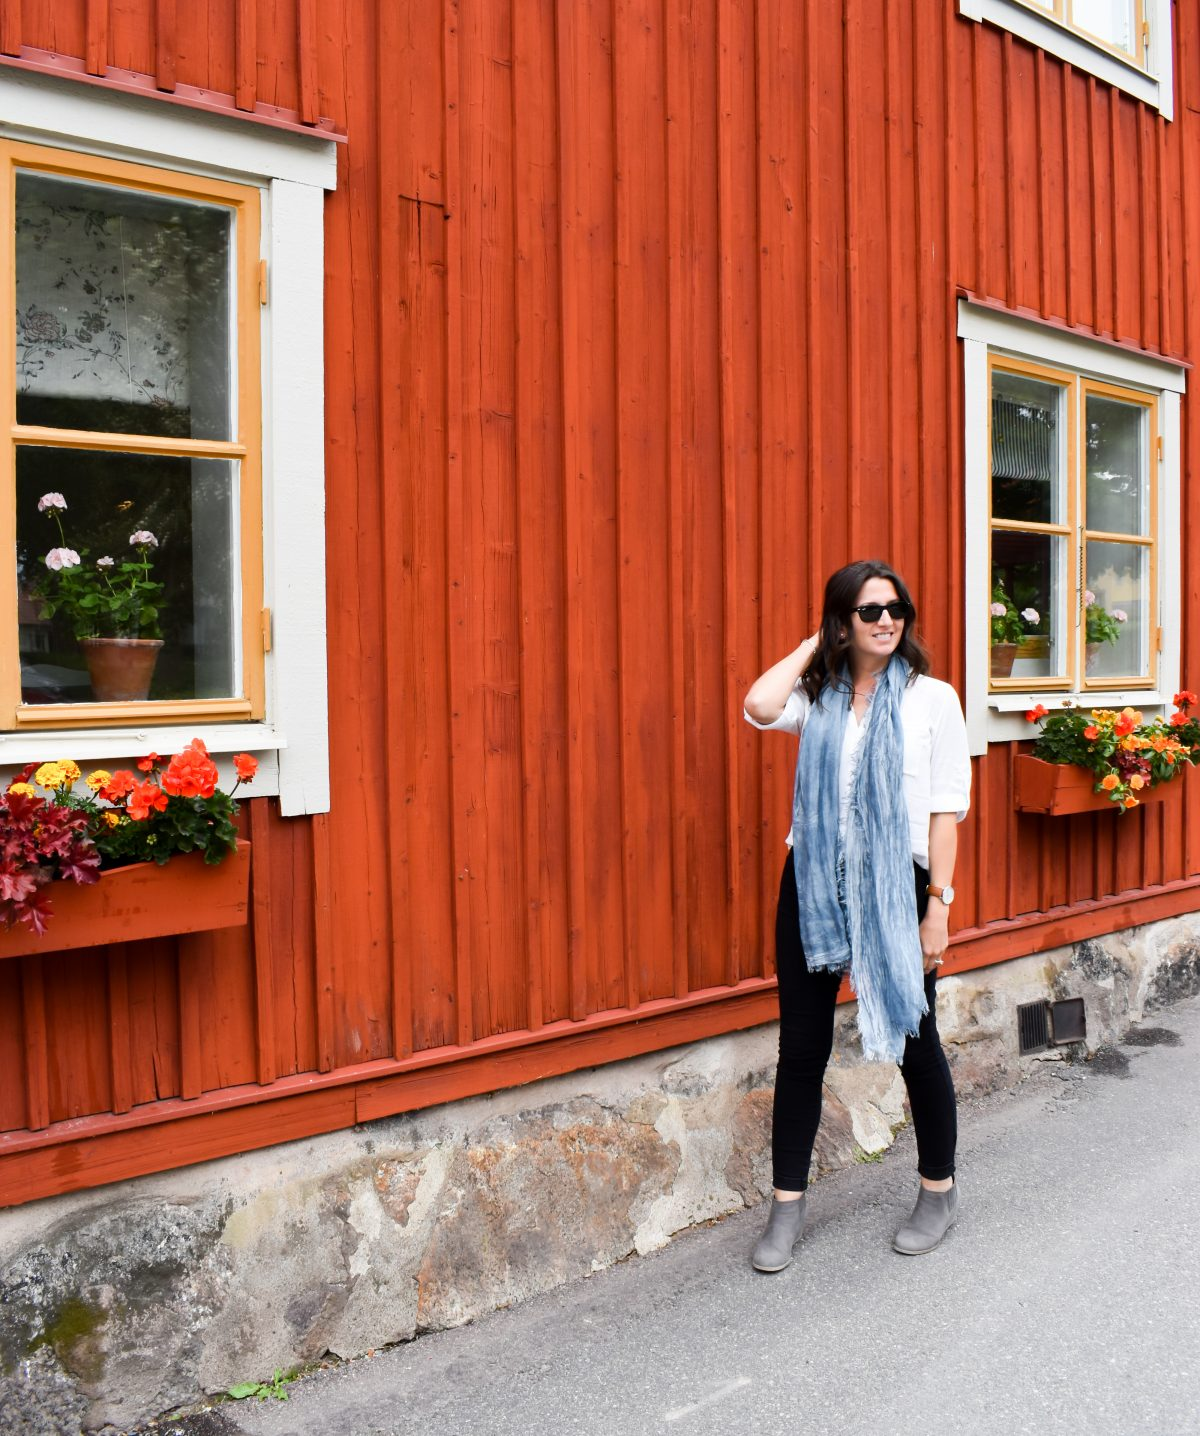 Erin walks along flower boxed in Sigtuna Sweden